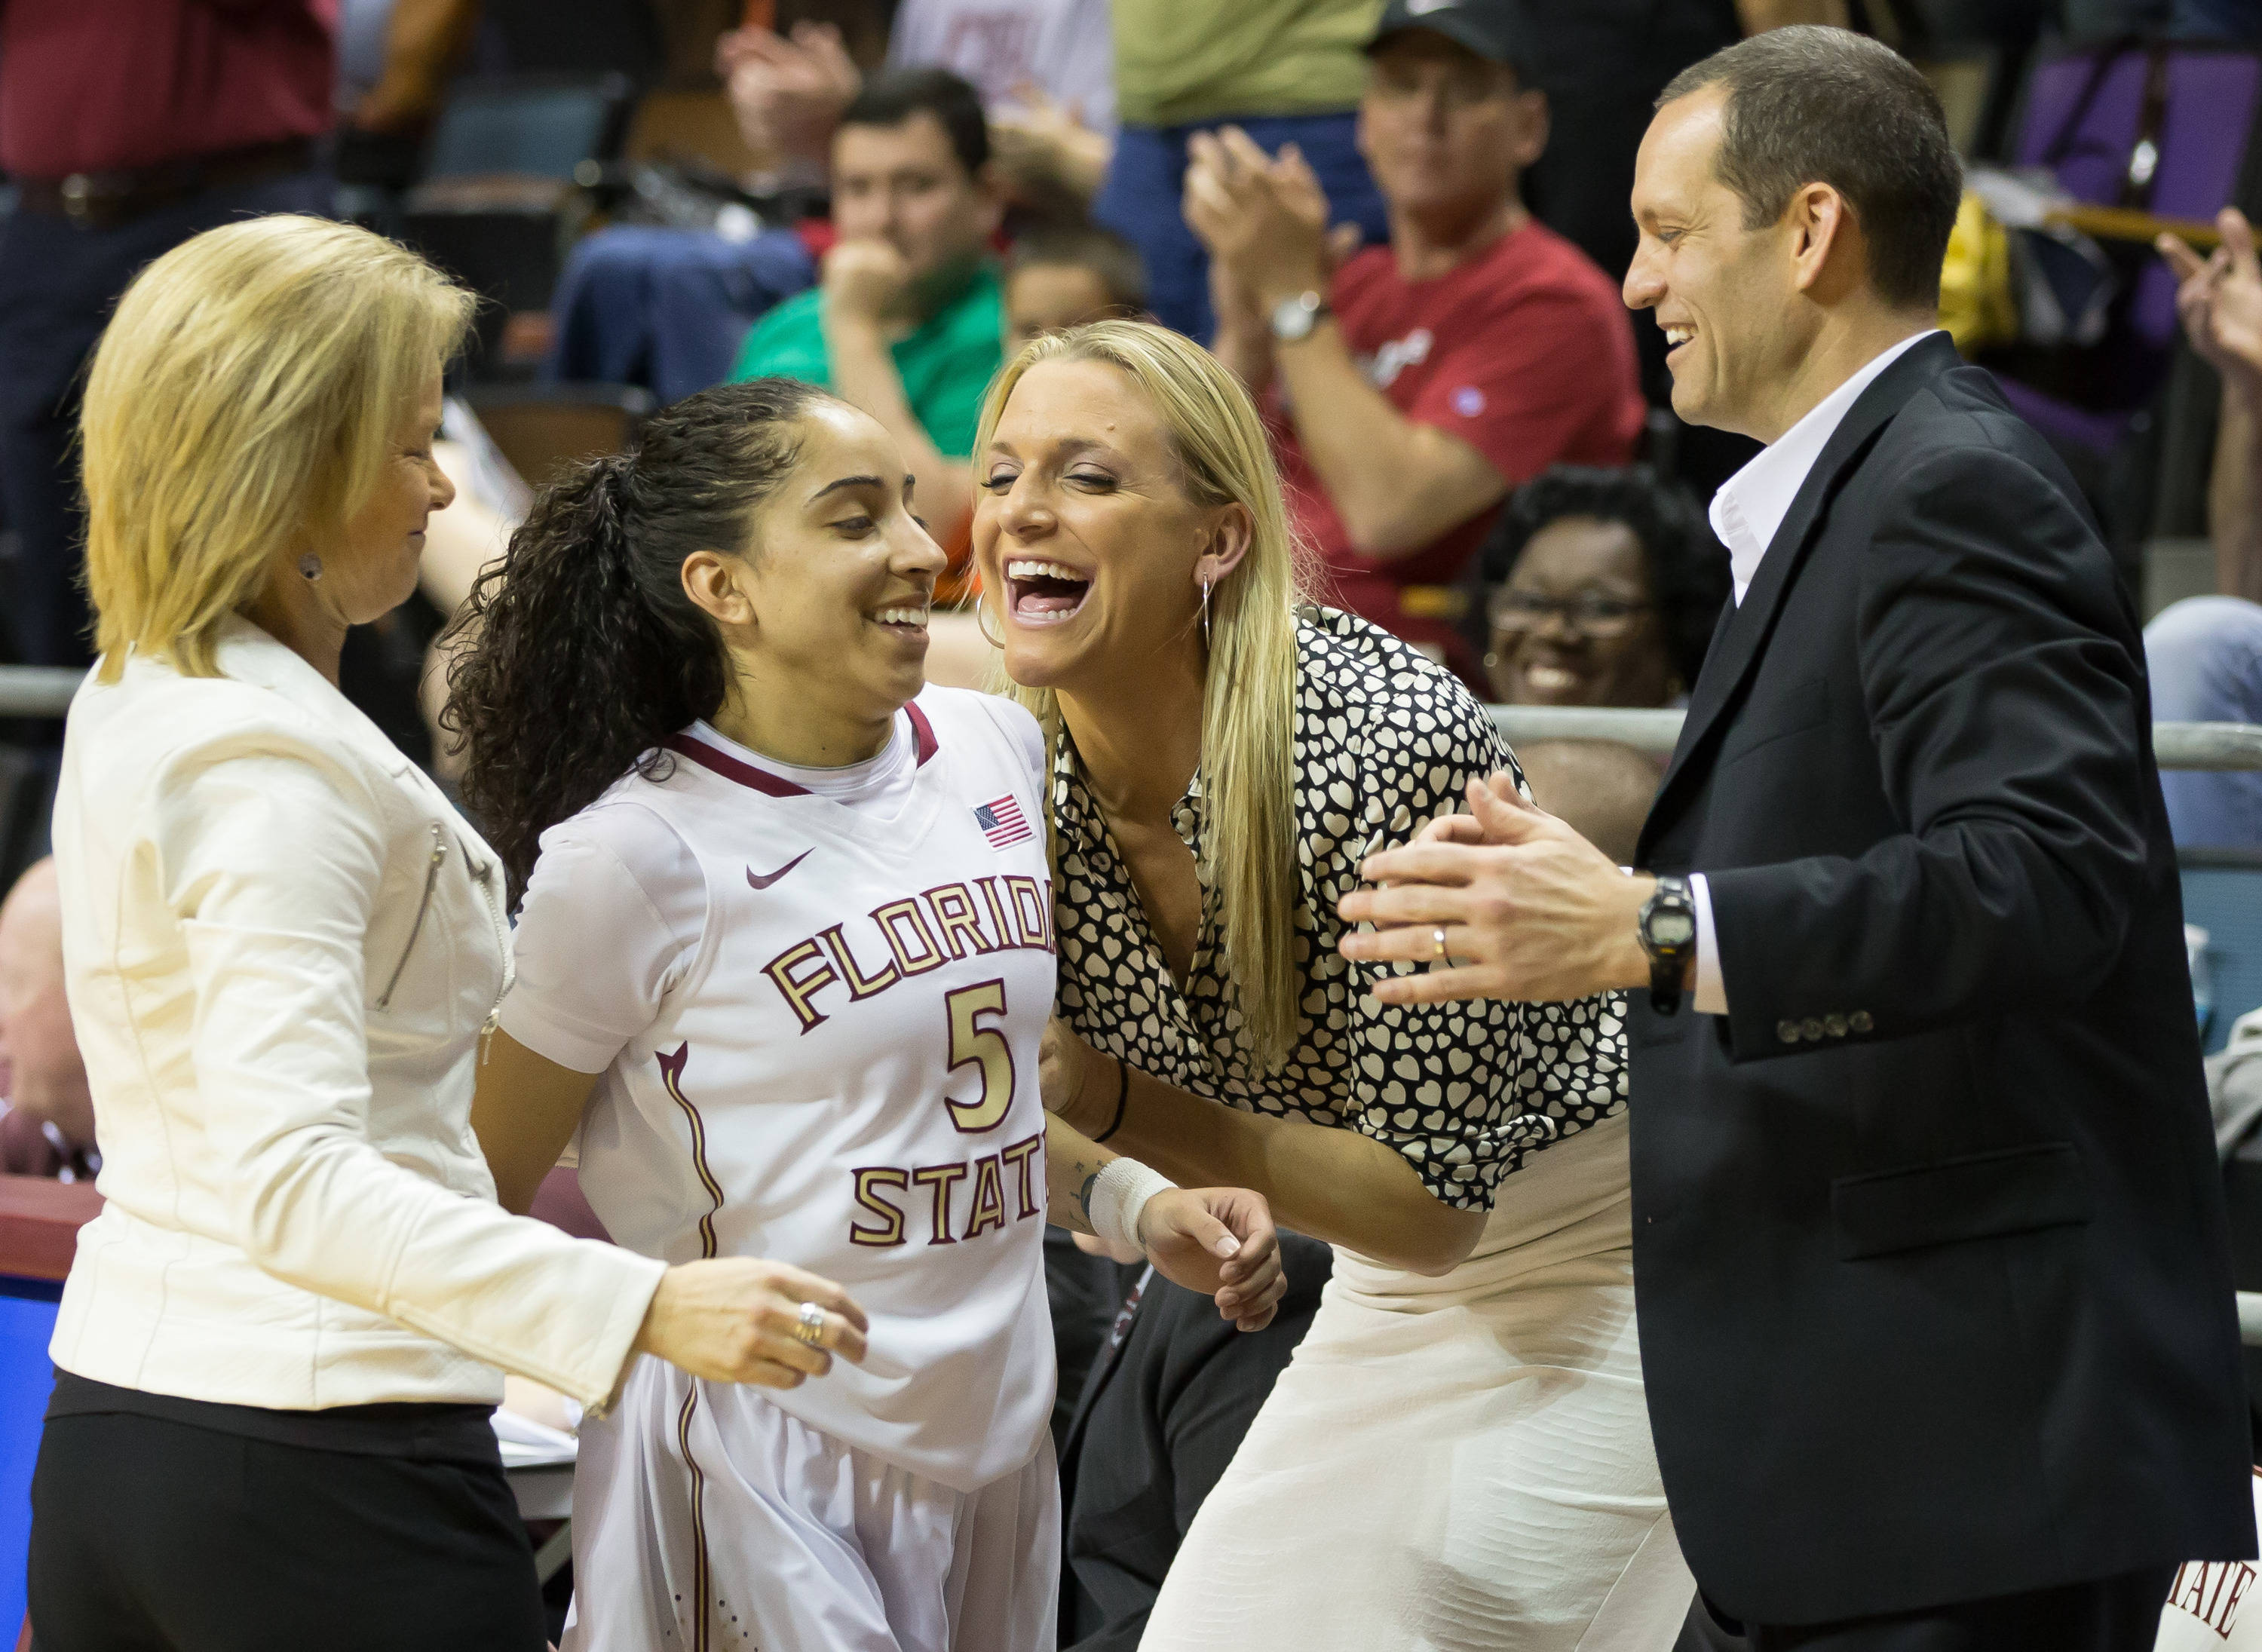 Cheetah Delgado (5) is greeted by the coaching staff as she comes off the court in the final minutes.